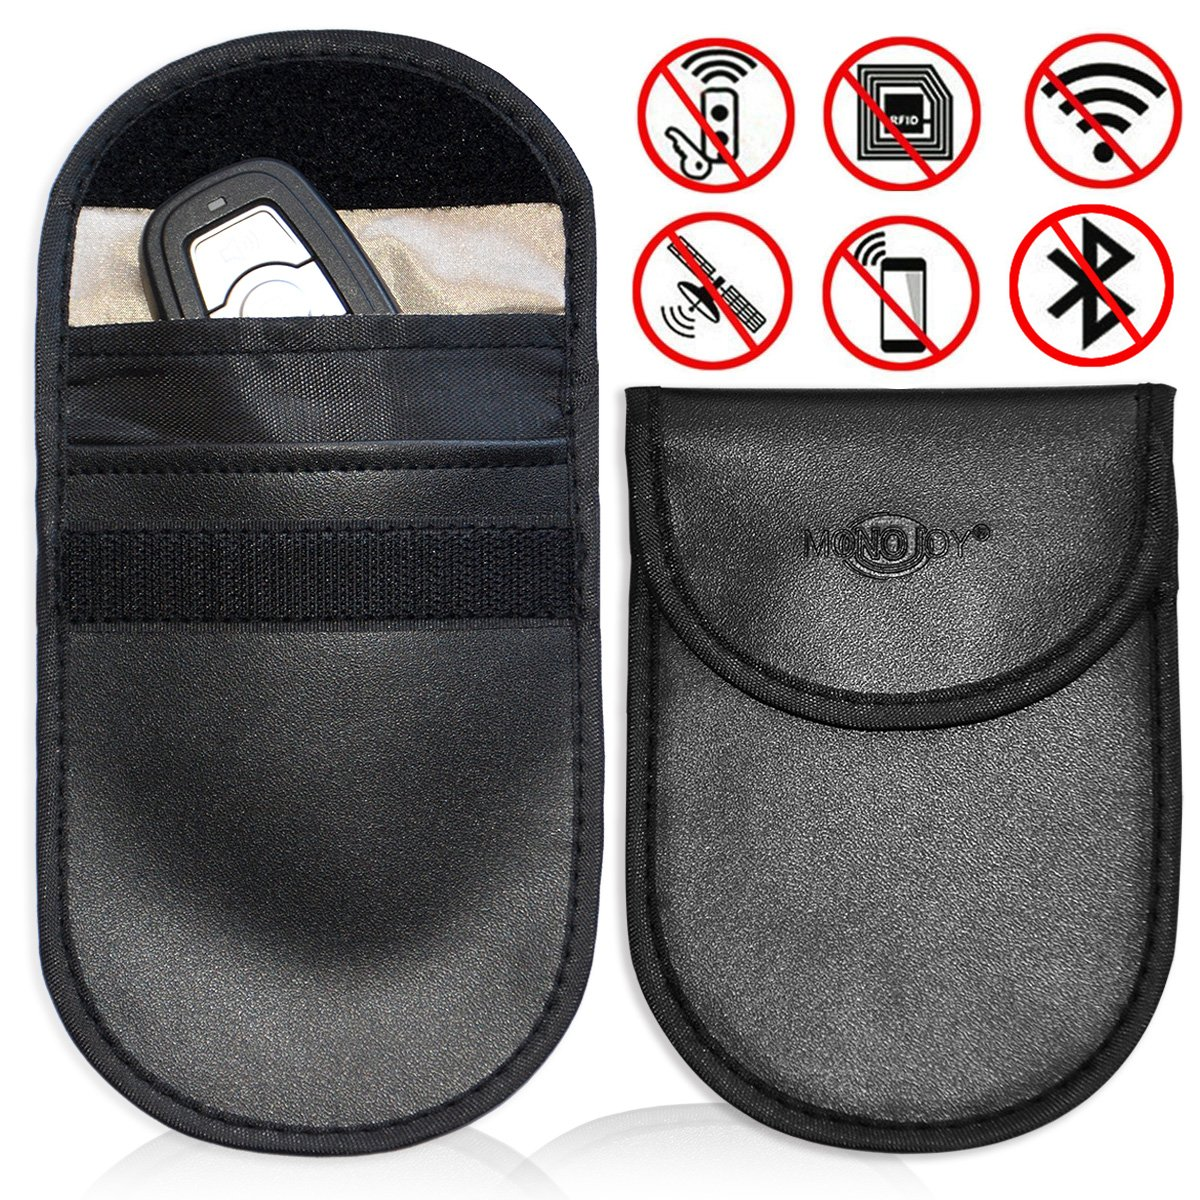 Faraday Cage Shield Car Key Fob Signal Blocking Pouch Vehicle Relay Attack Bag Rfid Guard Keyless Entry Remote Antitheft Lock Devices